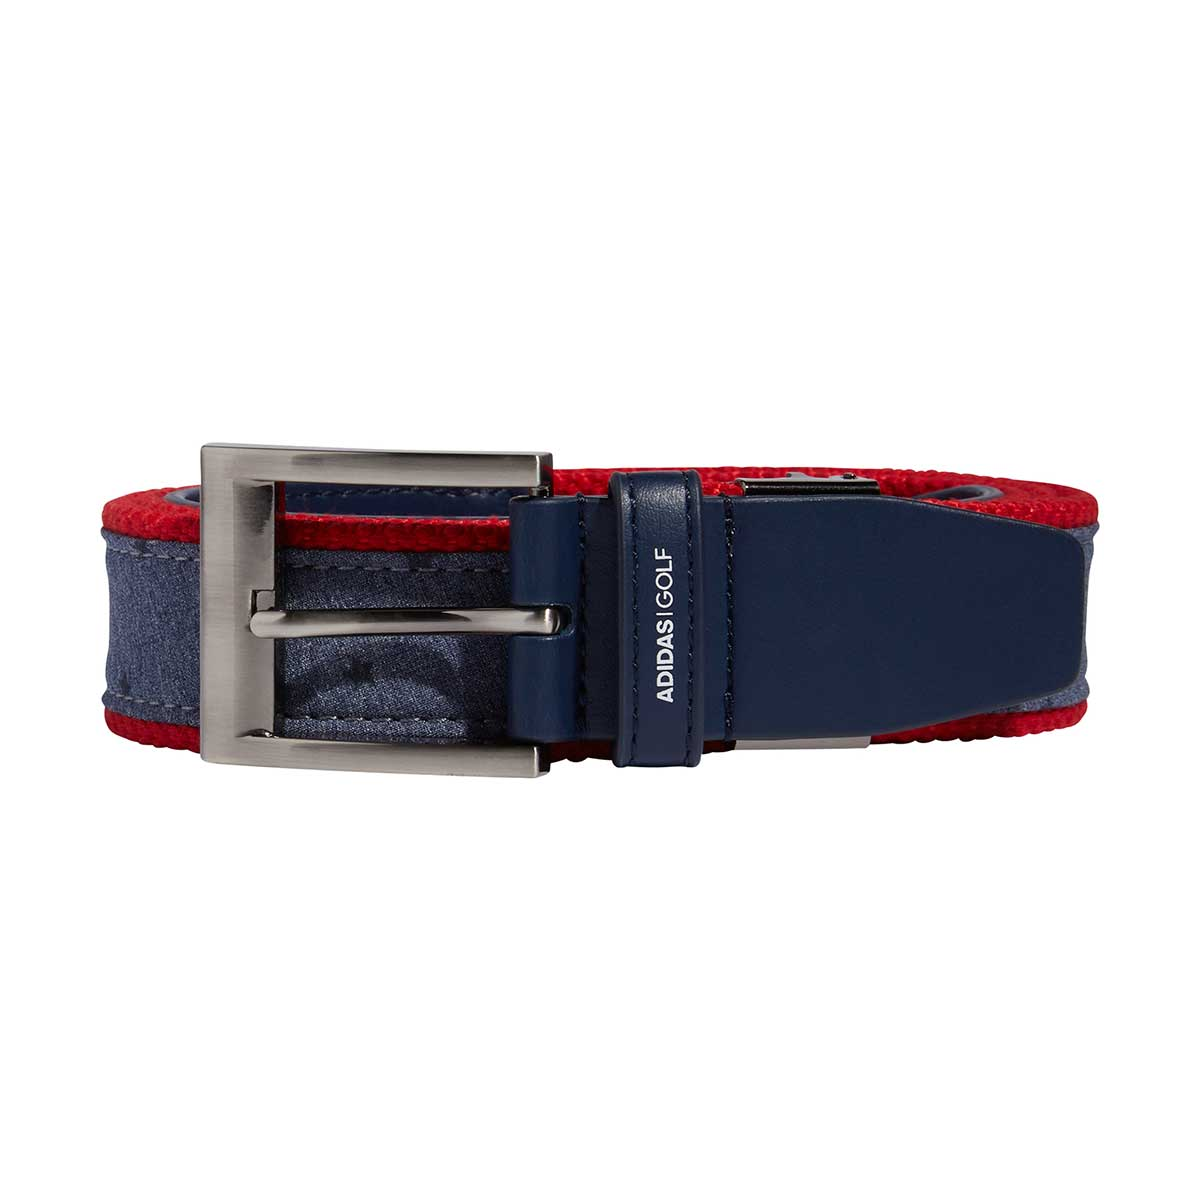 Adidas Men's USA Golf Web Belt